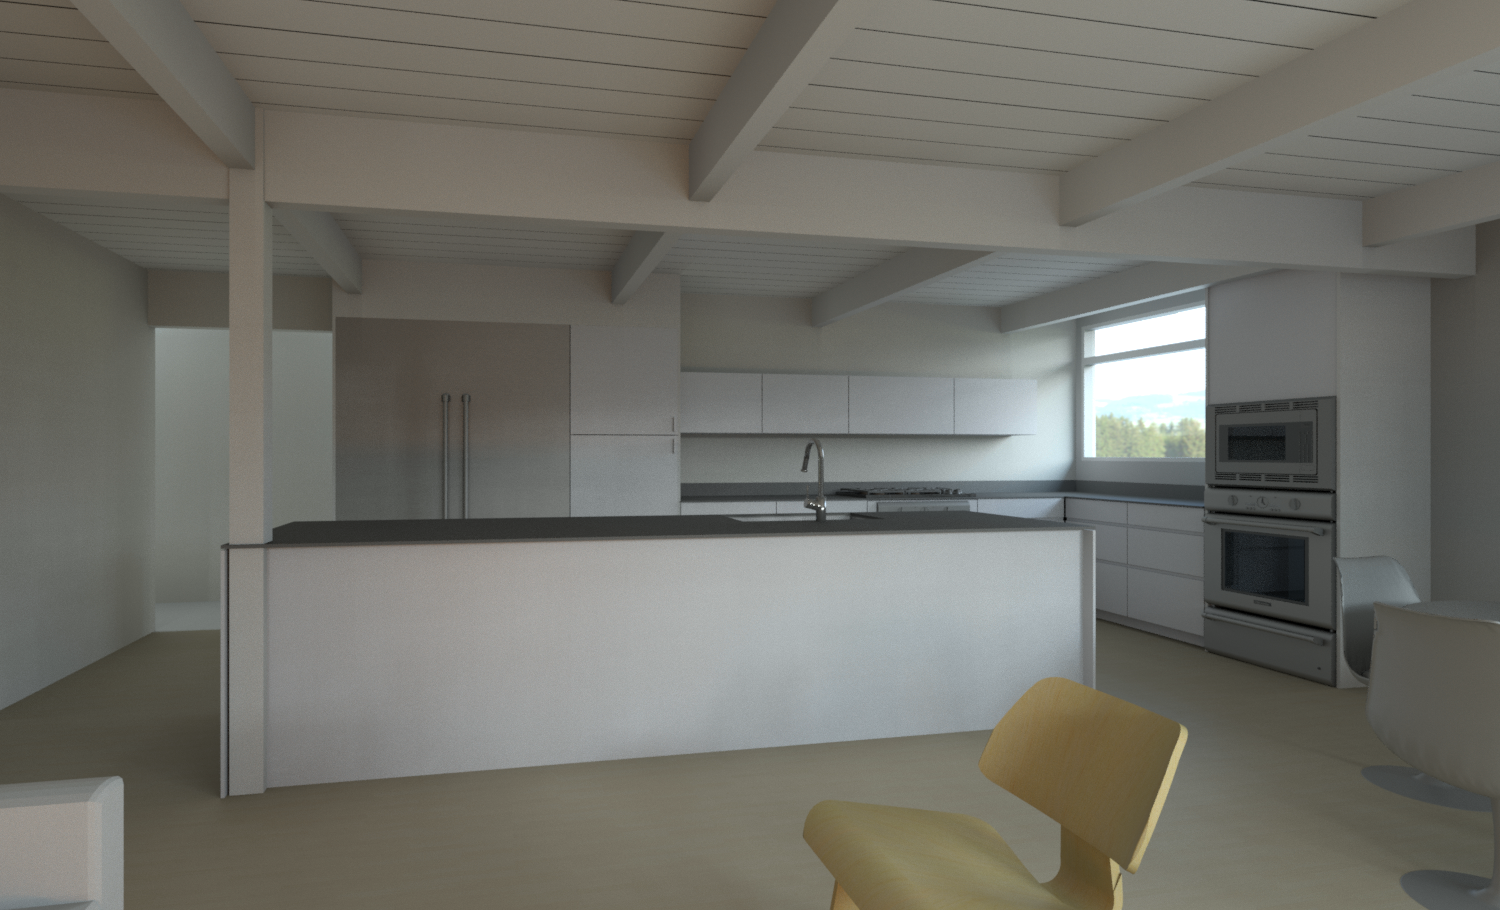 KP-15 _3D_View_-_Kitchen_from_sitting_-_Proposed.png